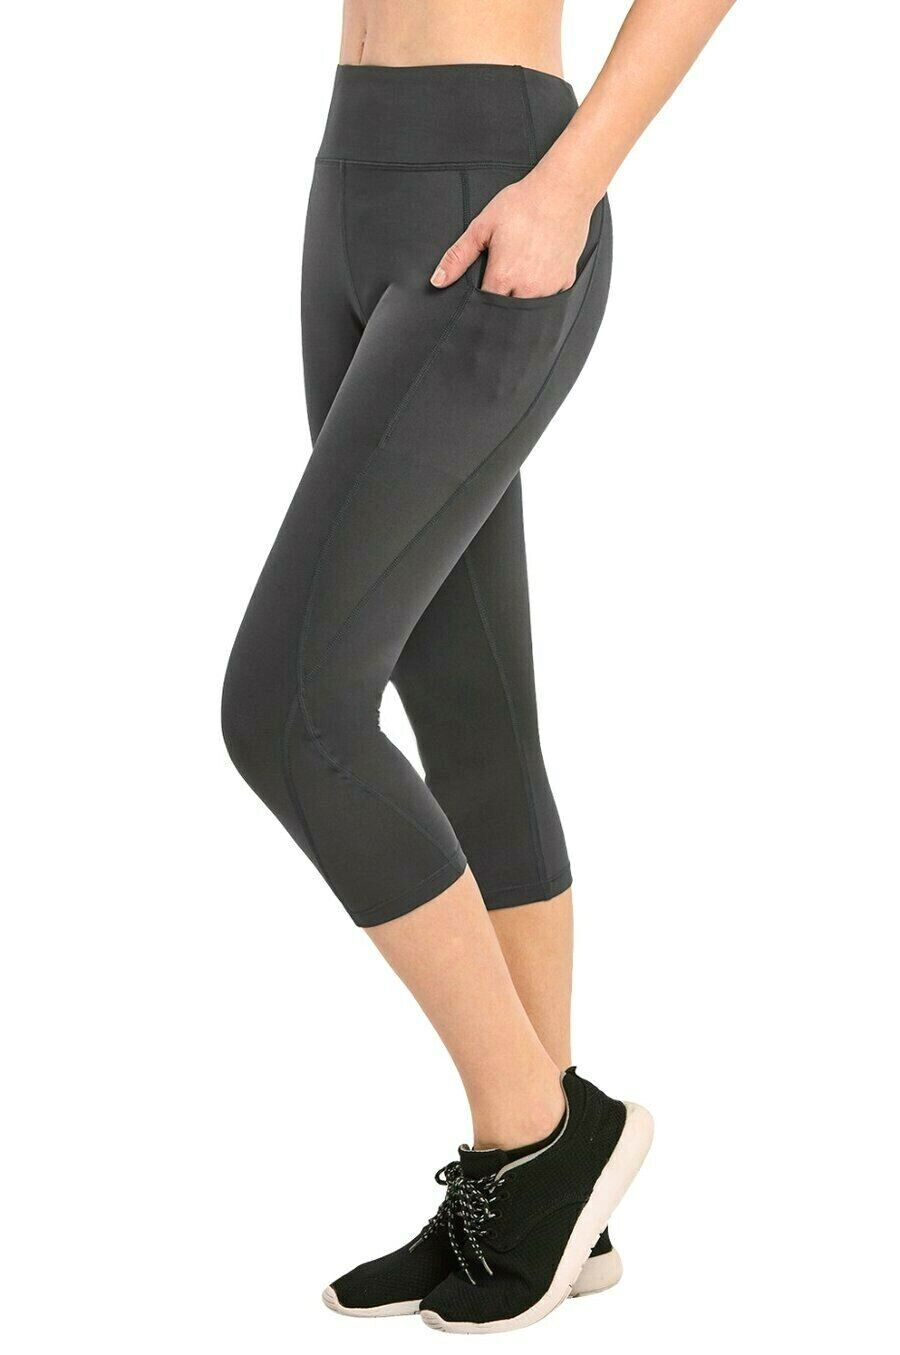 New Sofra Ladies Athletic Stretch Capri Leggings With Side Pockets